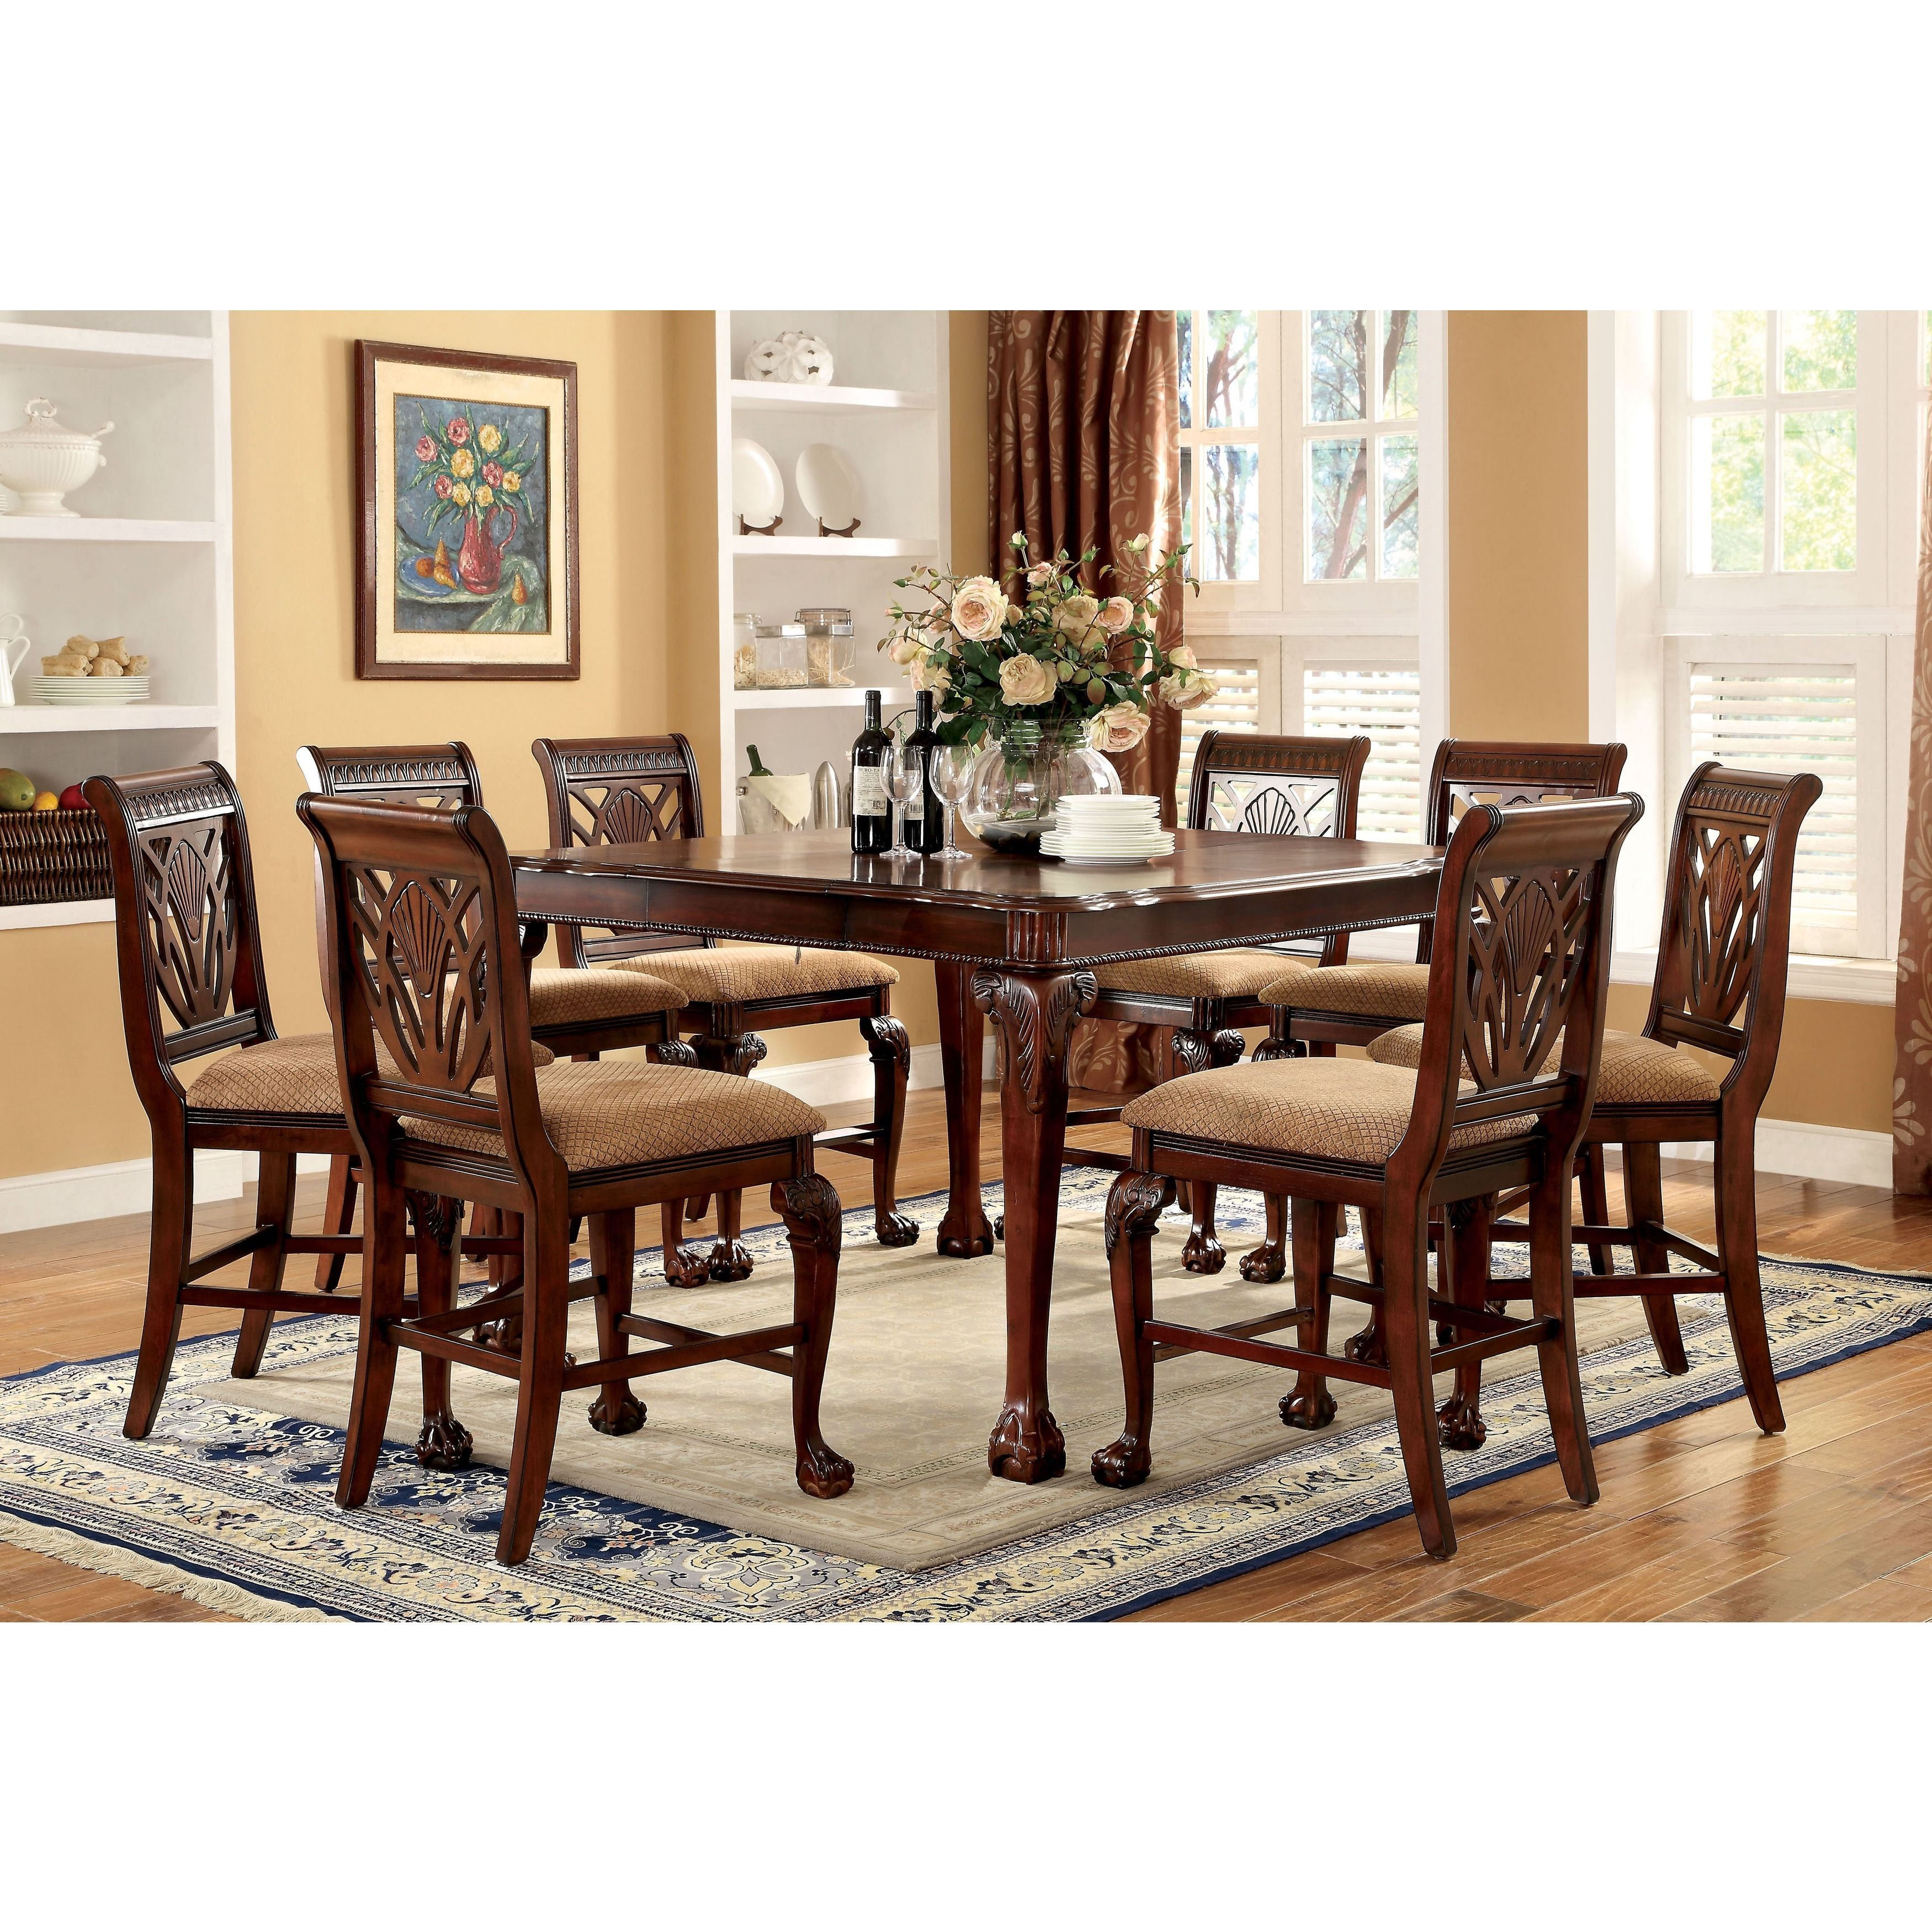 Furniture Of America Ranfort 9 Piece Cherry Counter Height Dining Set  (Cherry), Brown, Size 9 Piece Sets